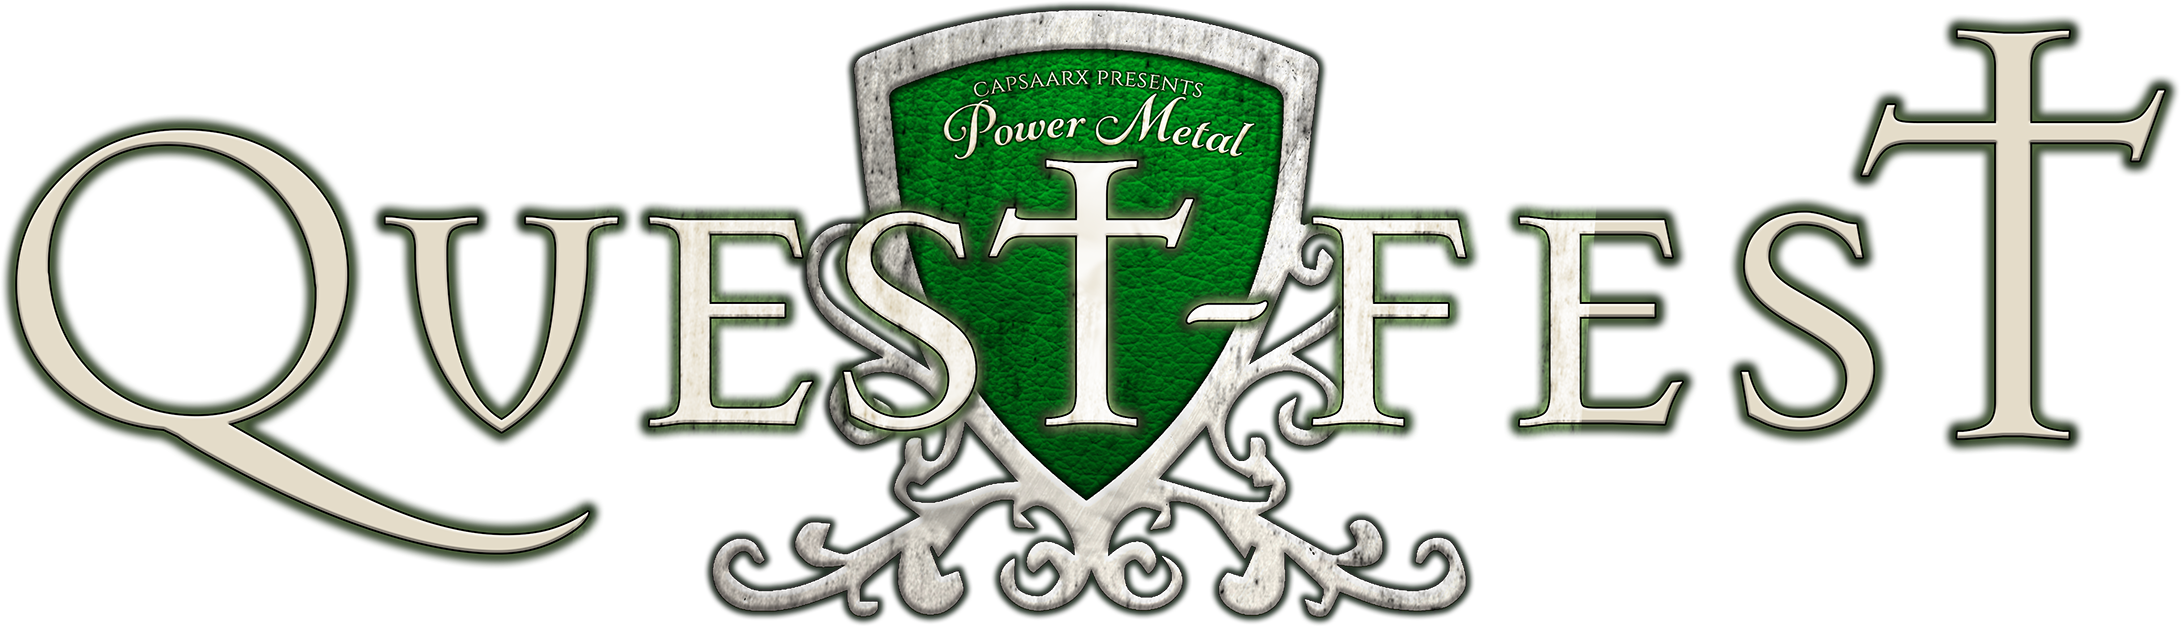 Power Metal Quest Fest